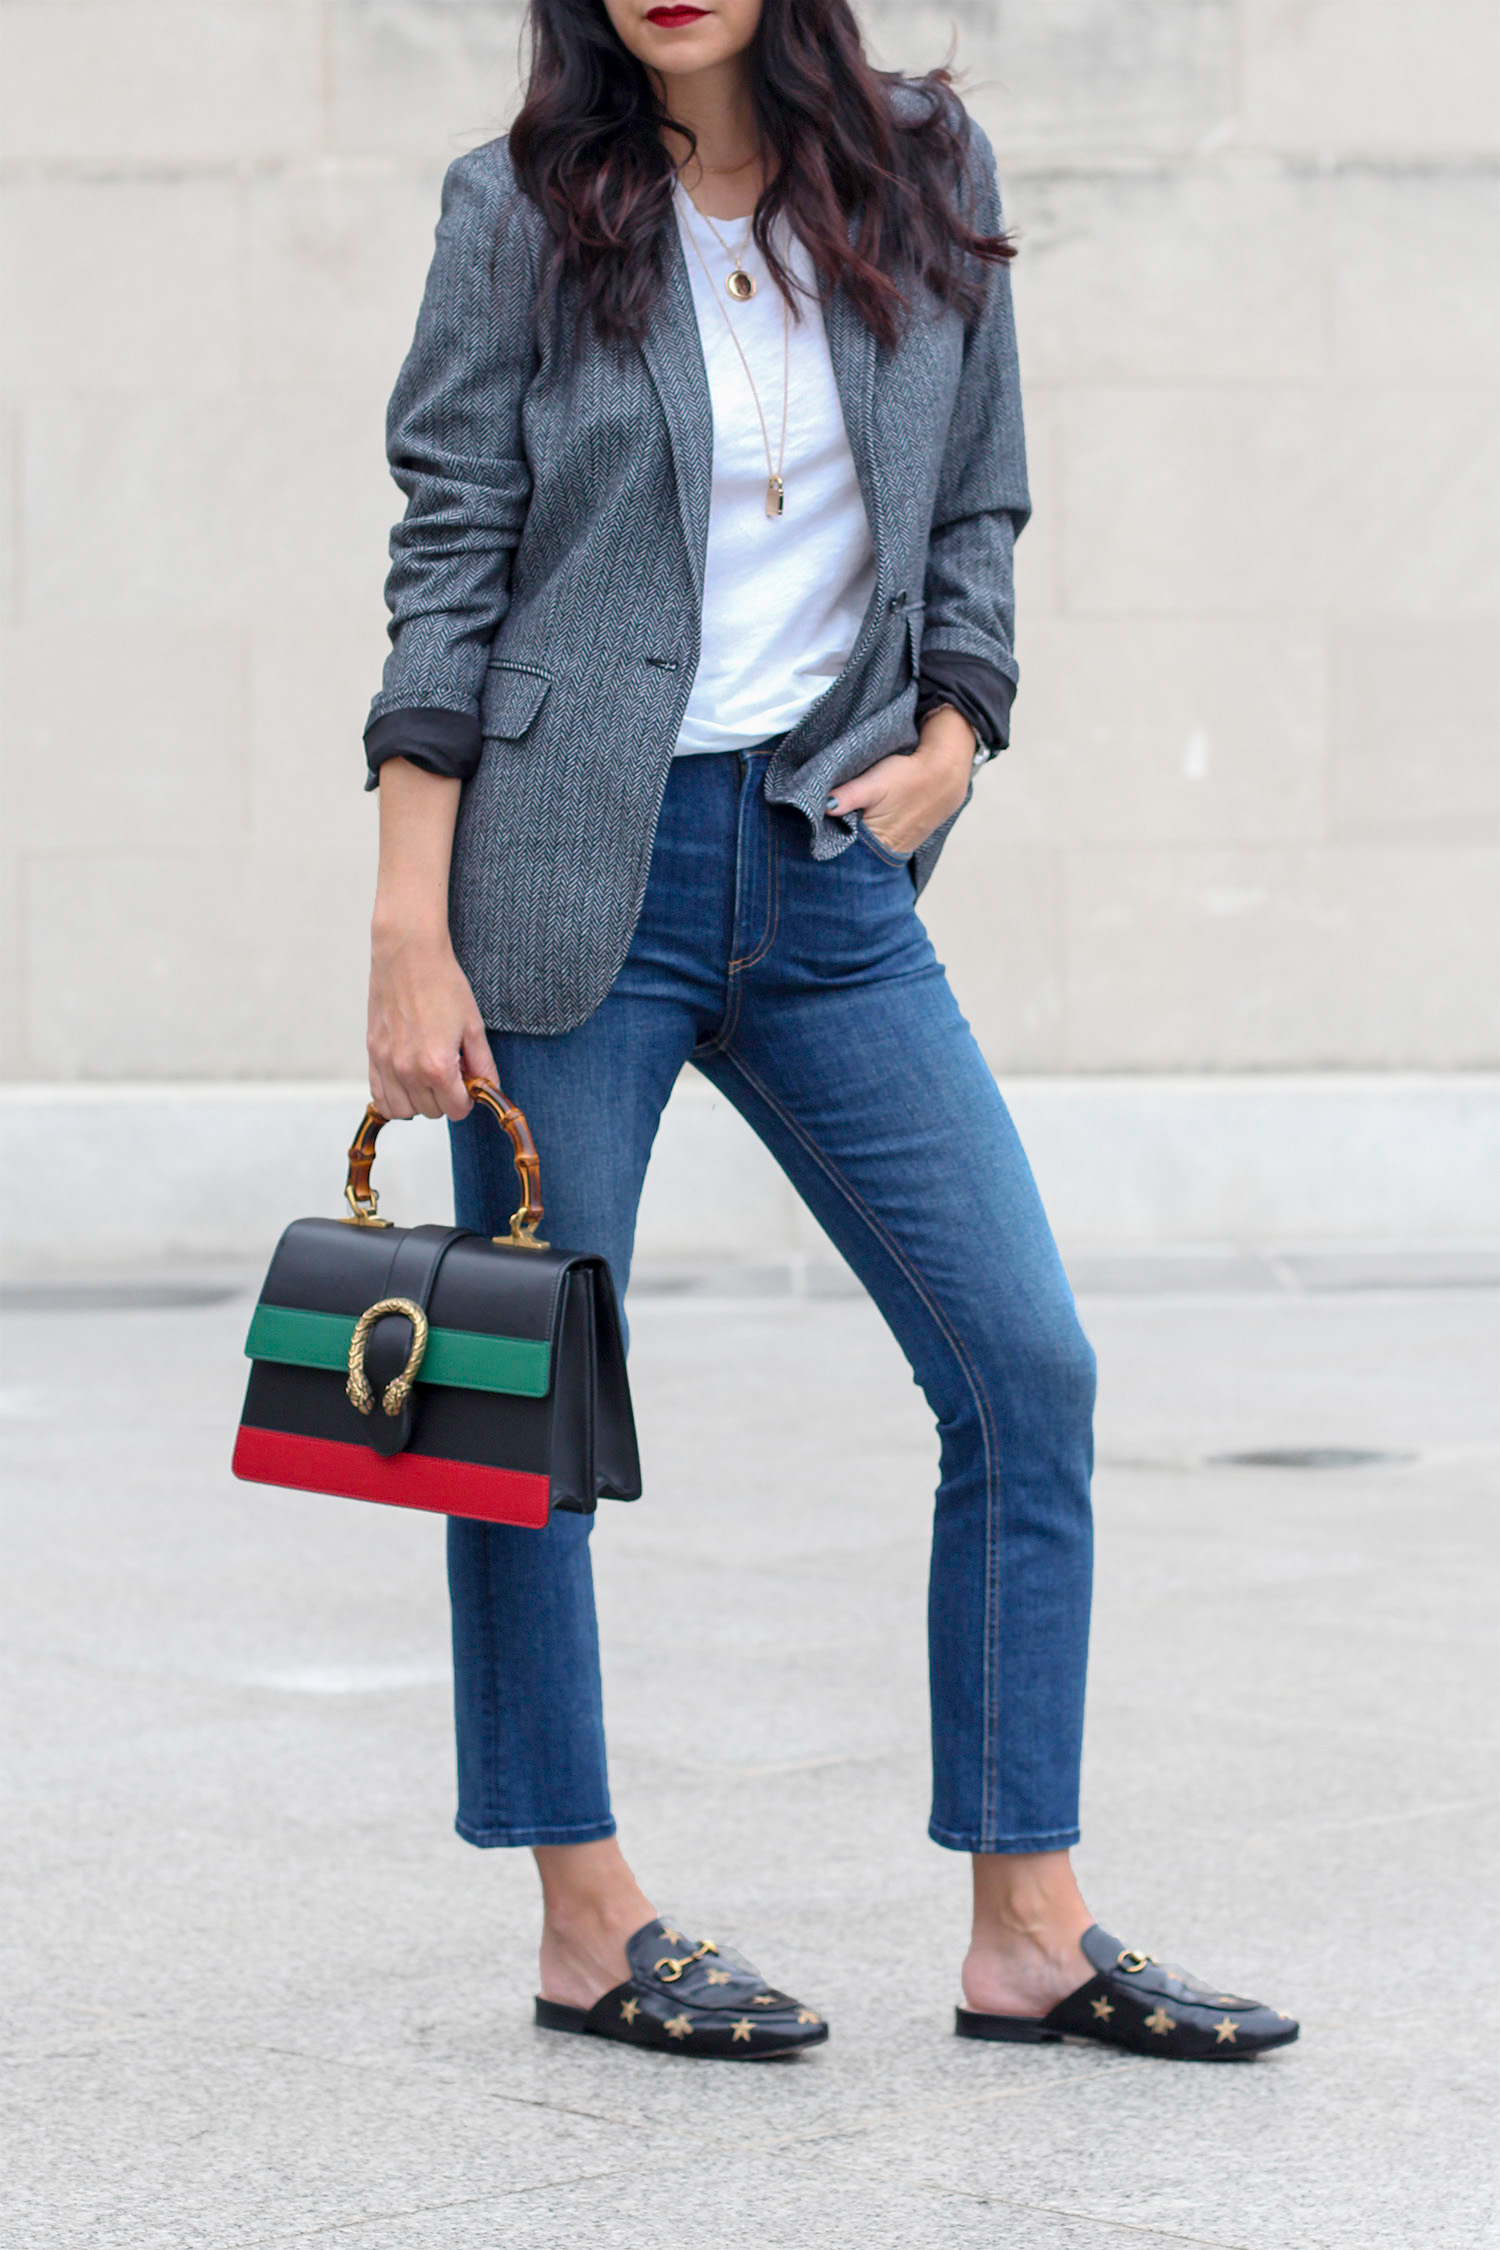 Casual Jeans and Blazer Look